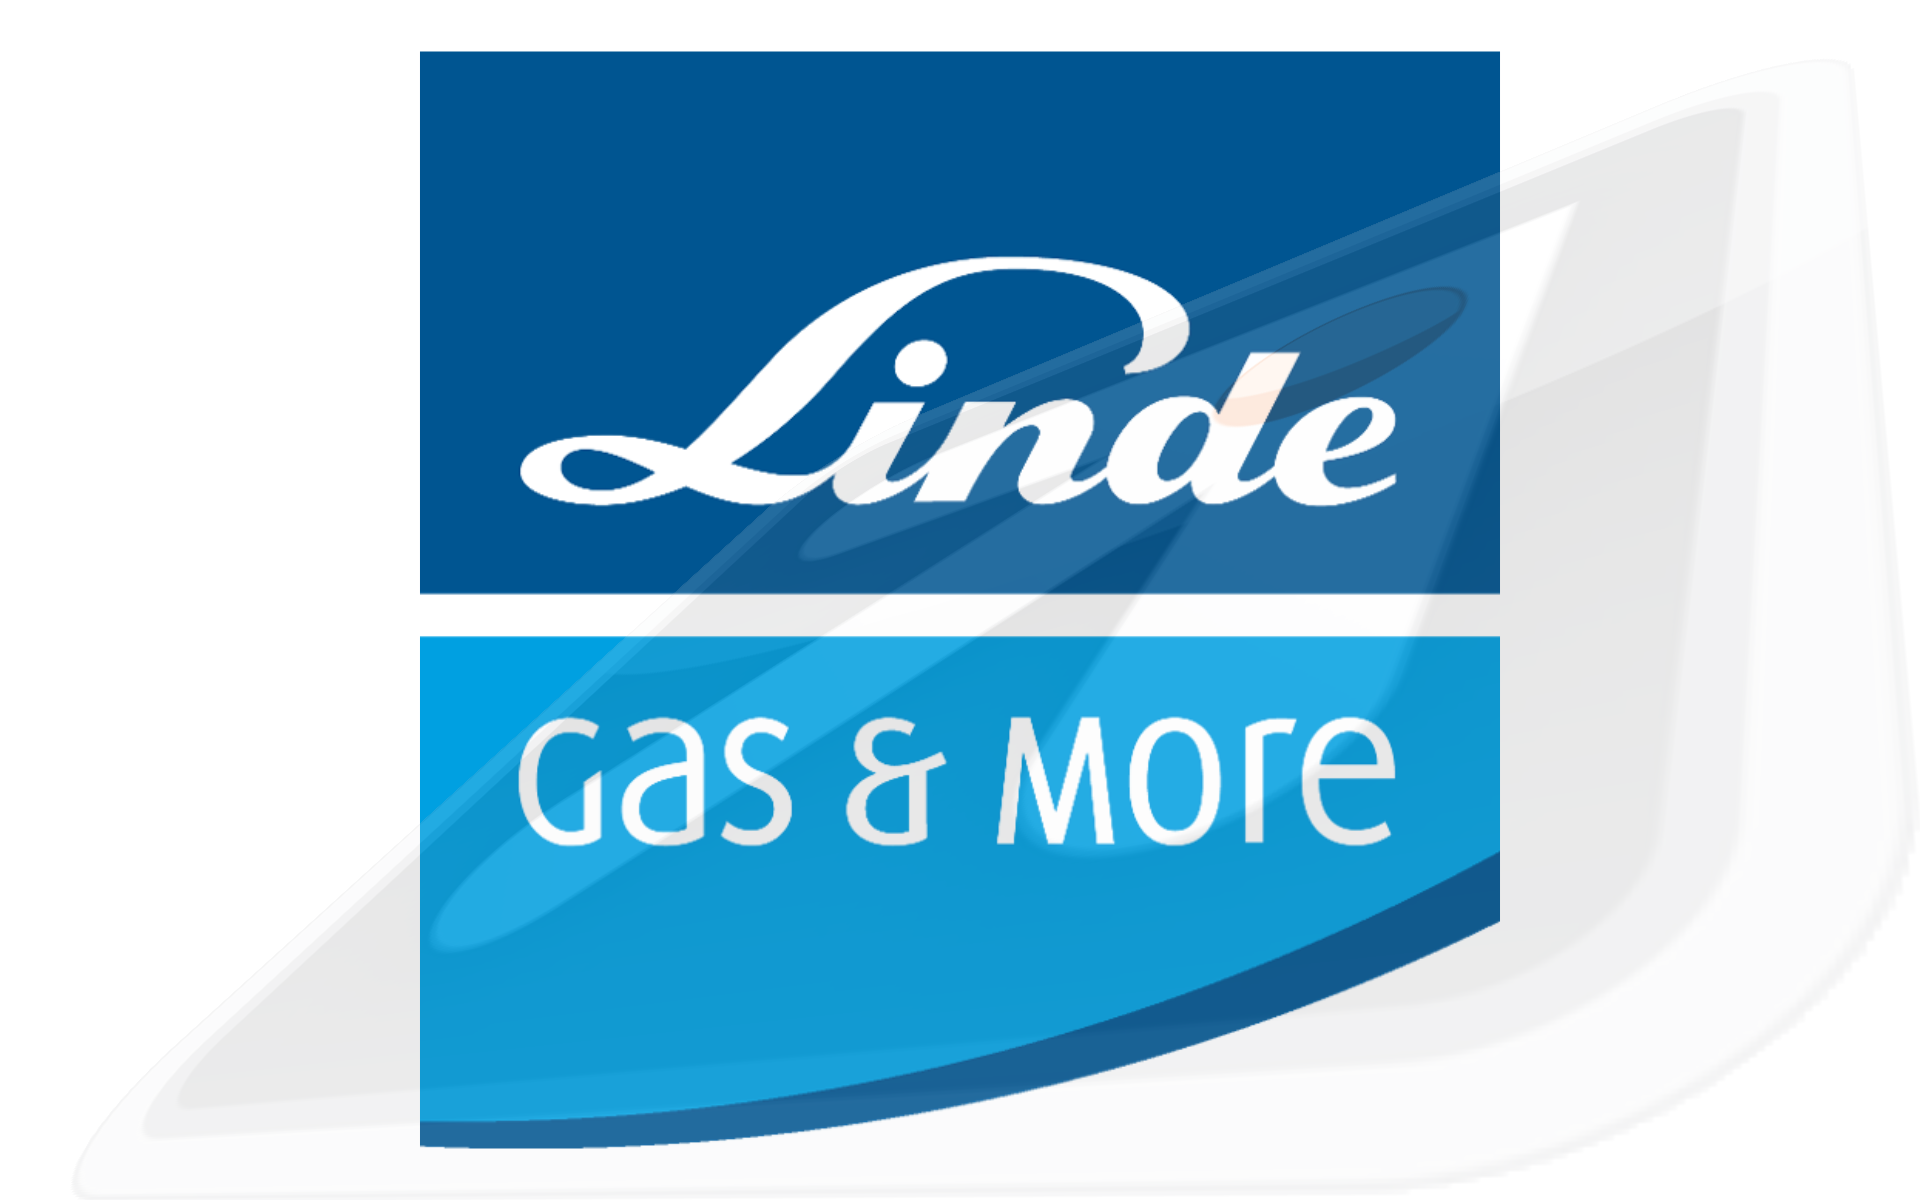 Linde Gas & More - Media & IT Maue